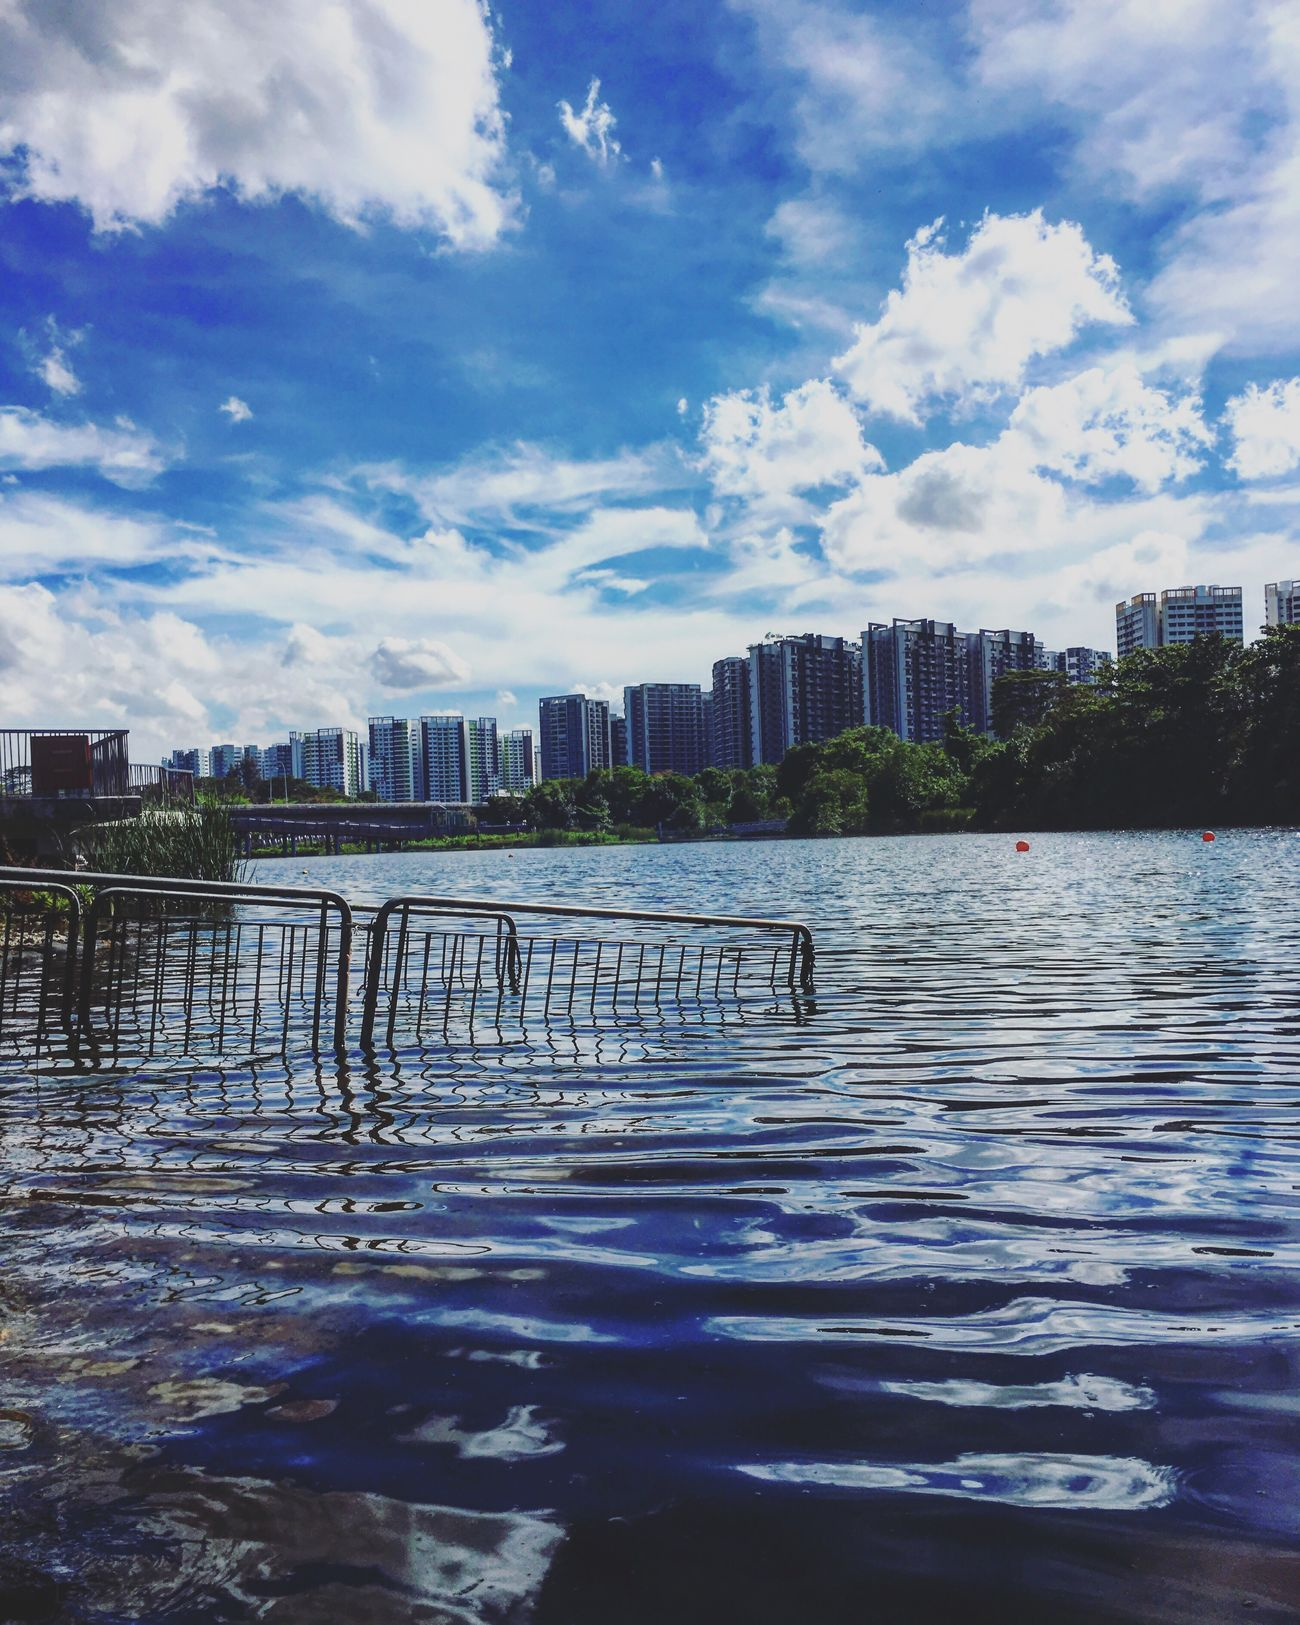 Stairway to Atlantis Water Sky Cloud - Sky Waterfront River Beauty In Nature No People Flooded